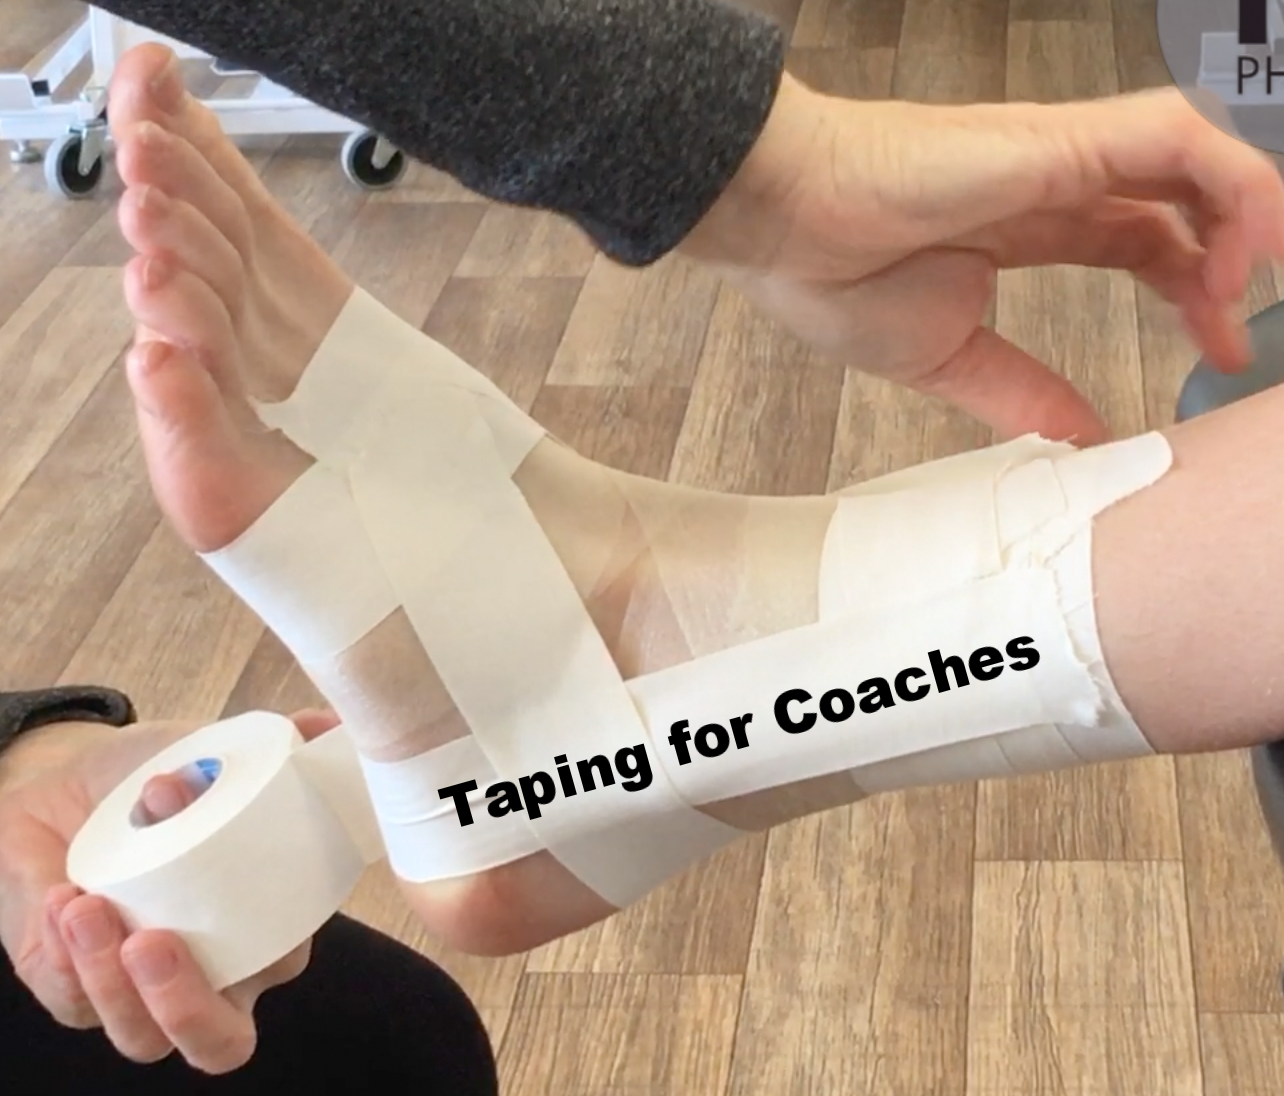 Taping for Coaches